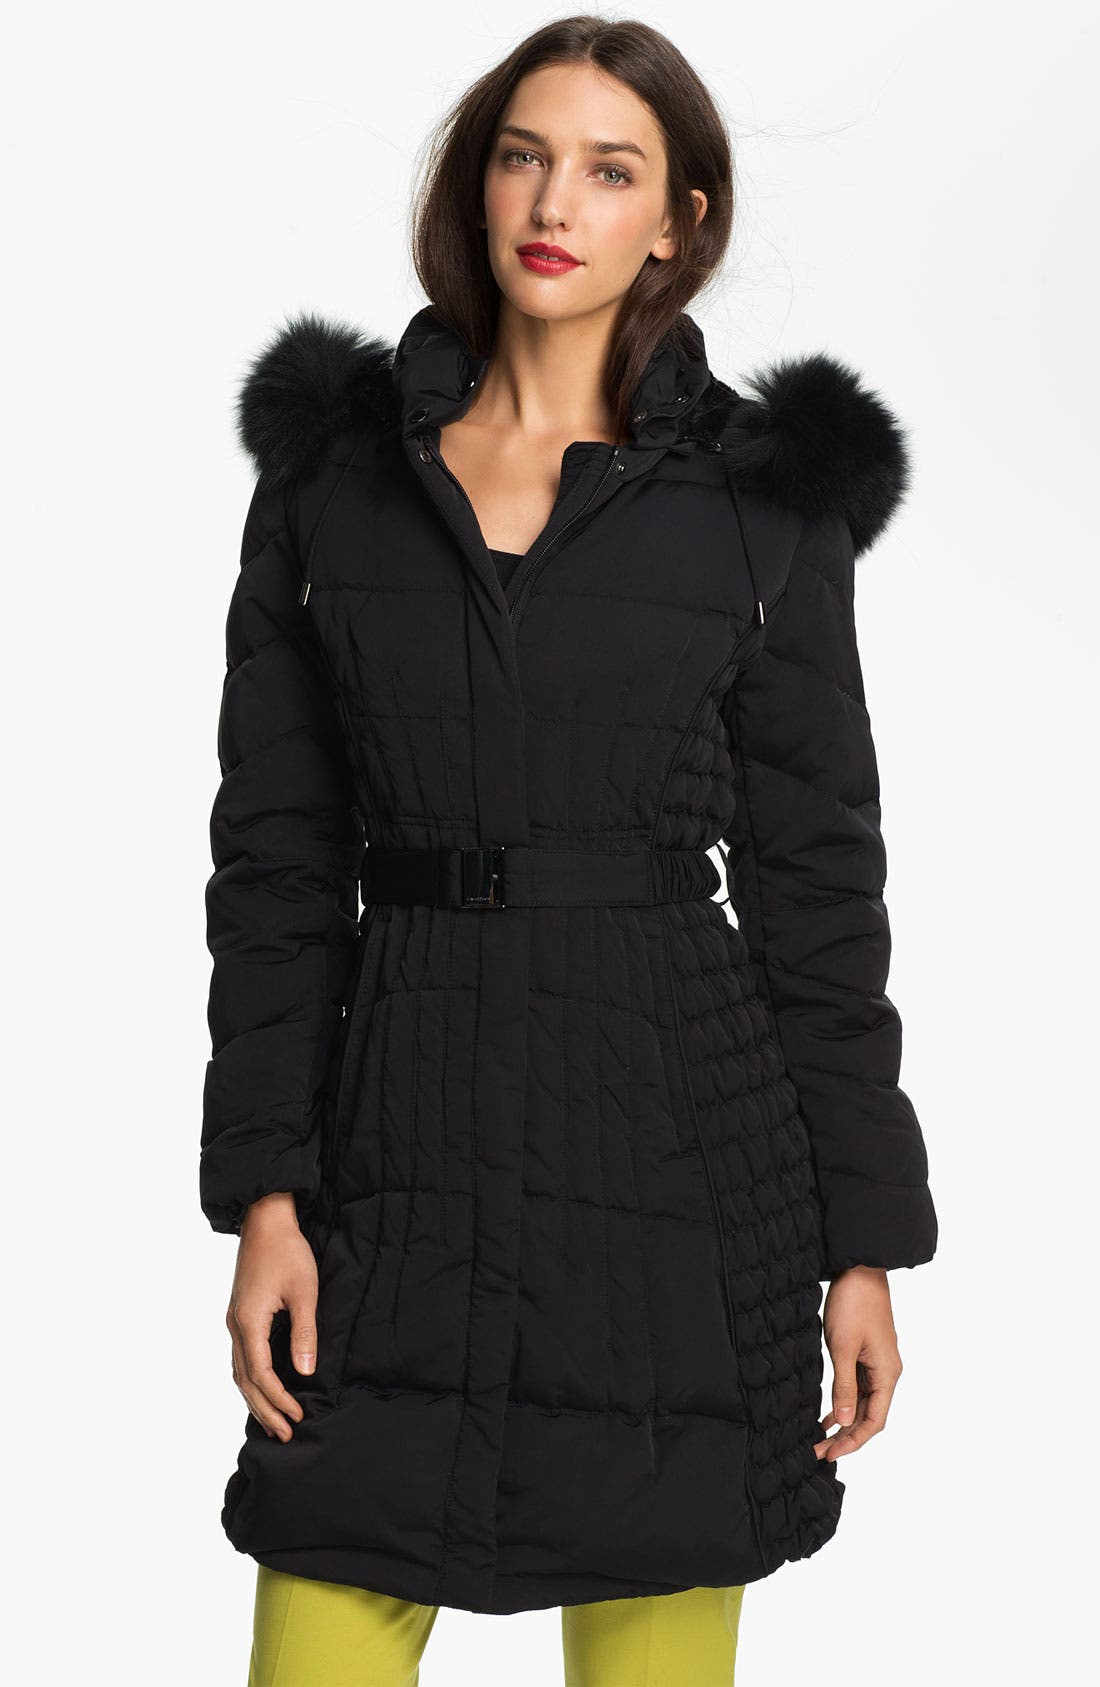 Alternate Image 1 Selected - 1 Madison Quilted Coat with Genuine Fox Fur